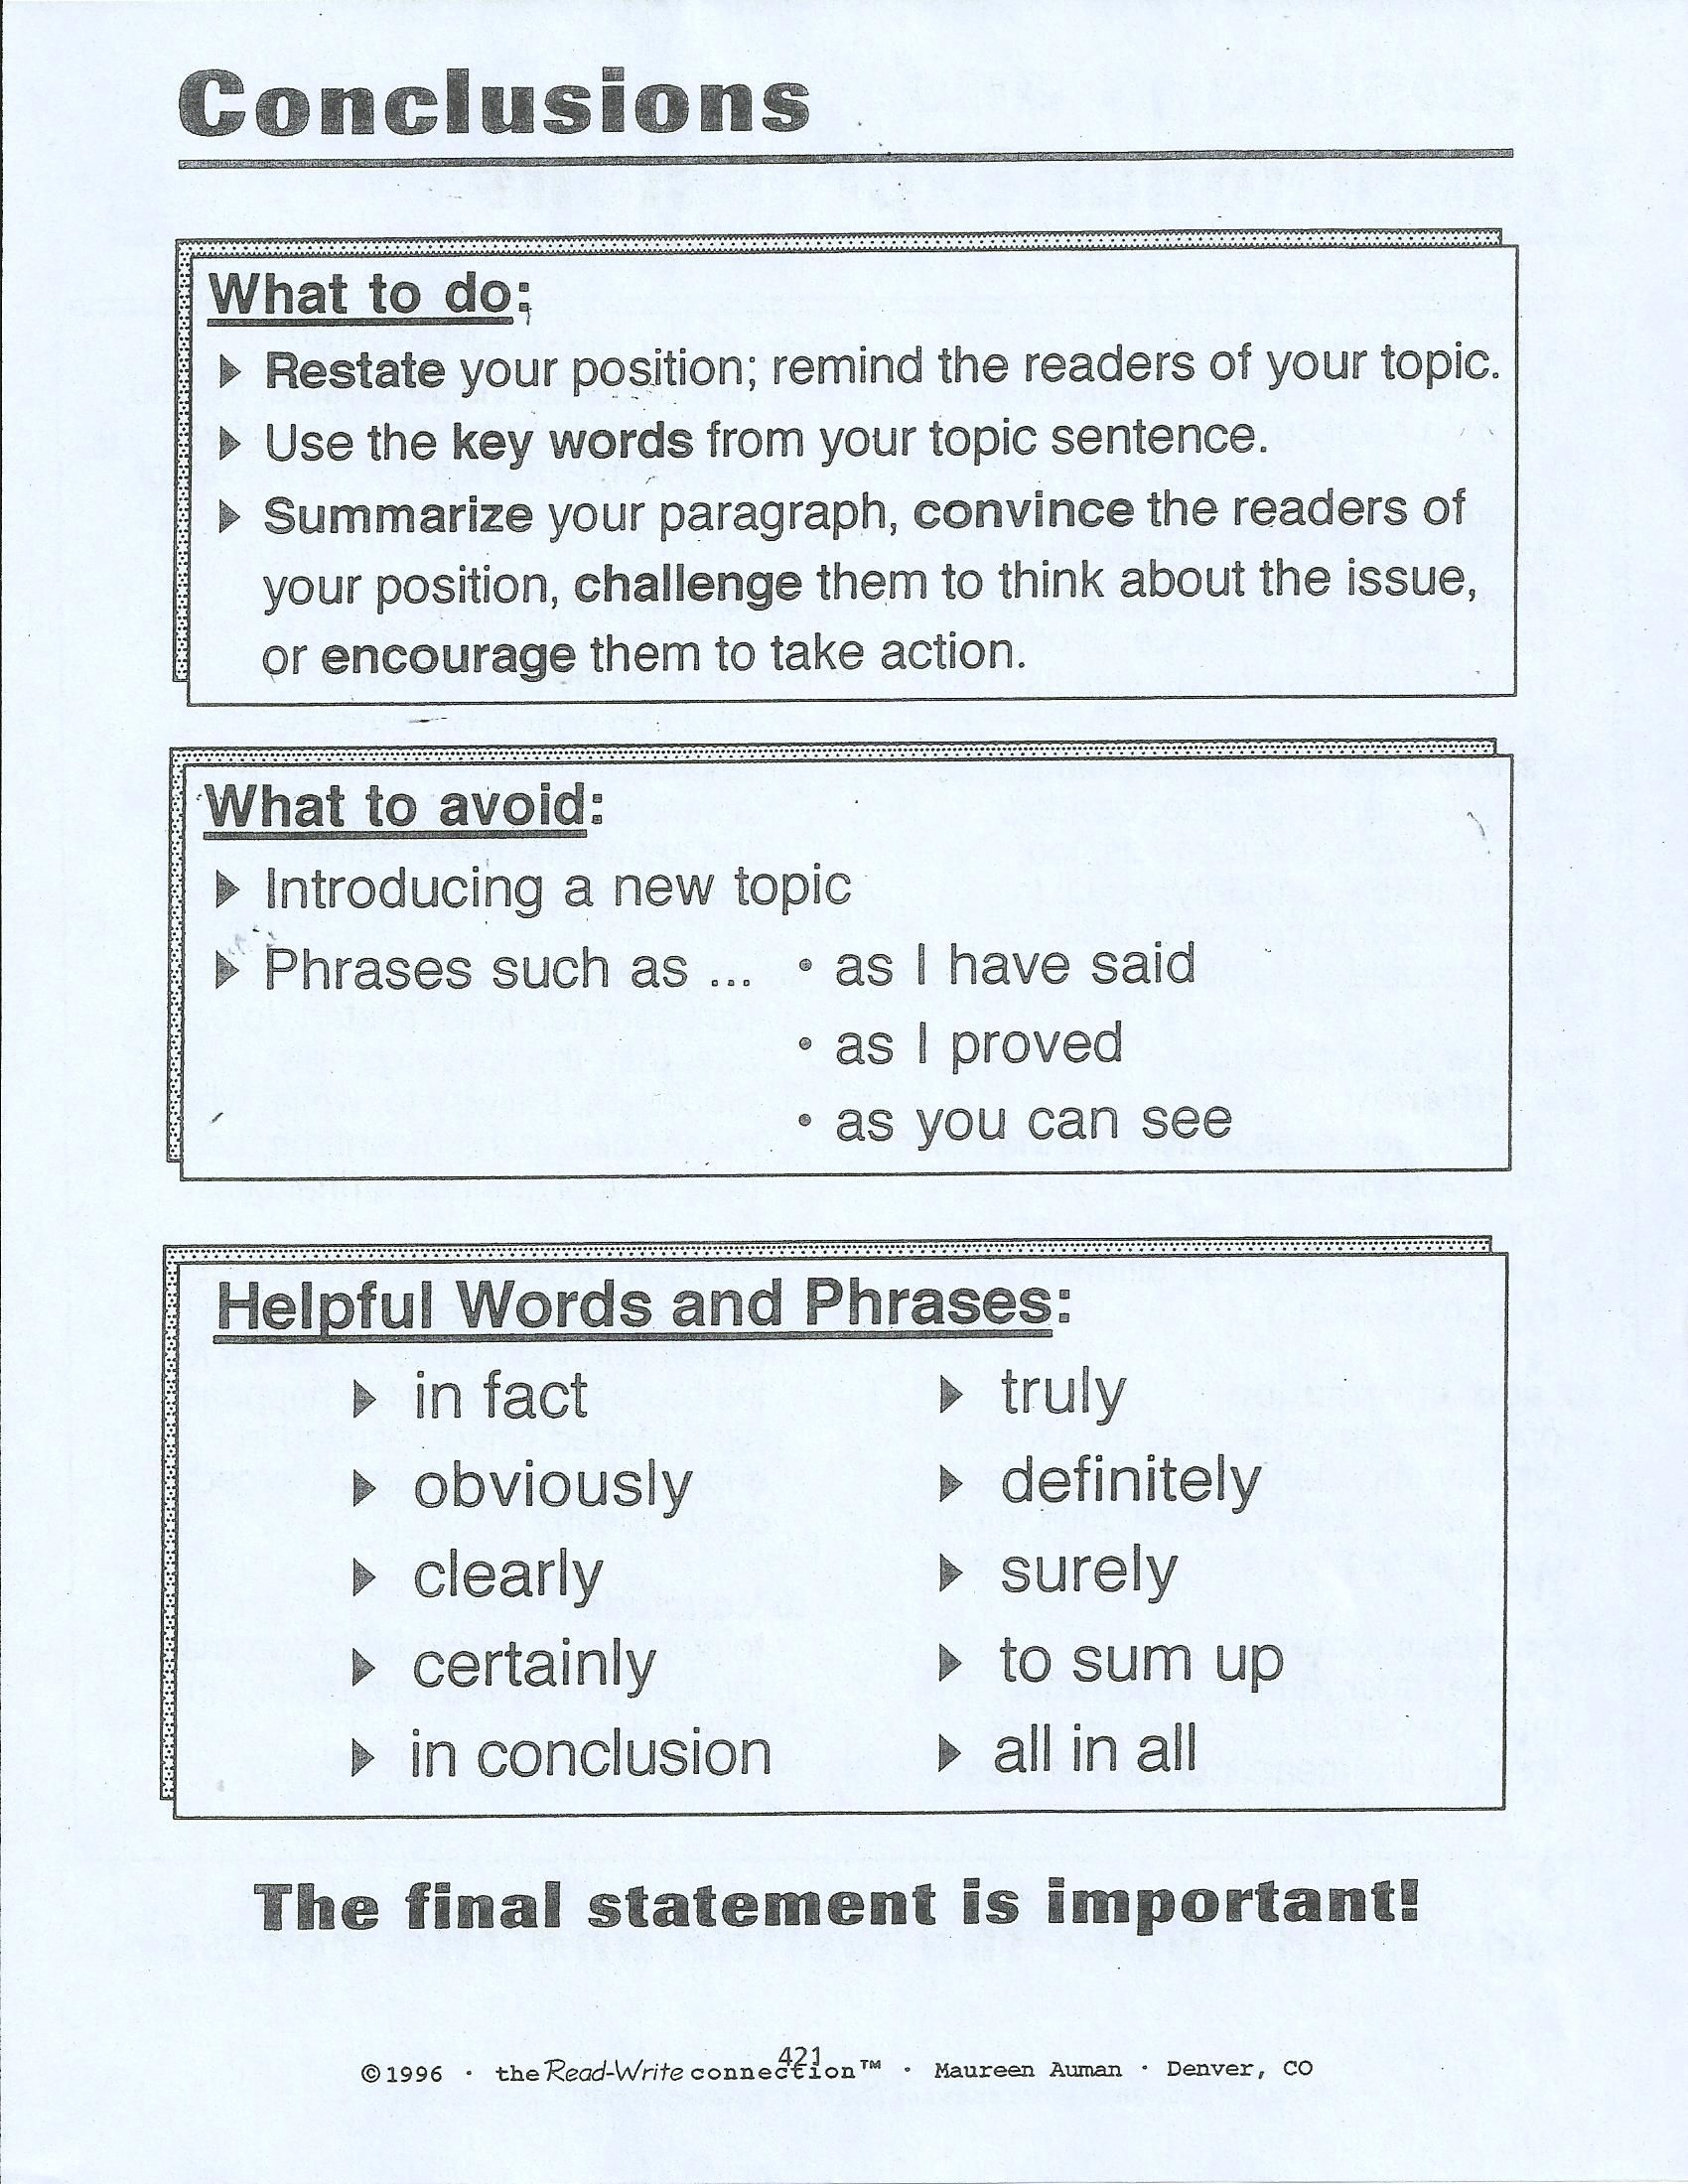 Pin By Sarah Beirouti On Writing 12 Expository Writing Persuasive Writing Teaching Writing